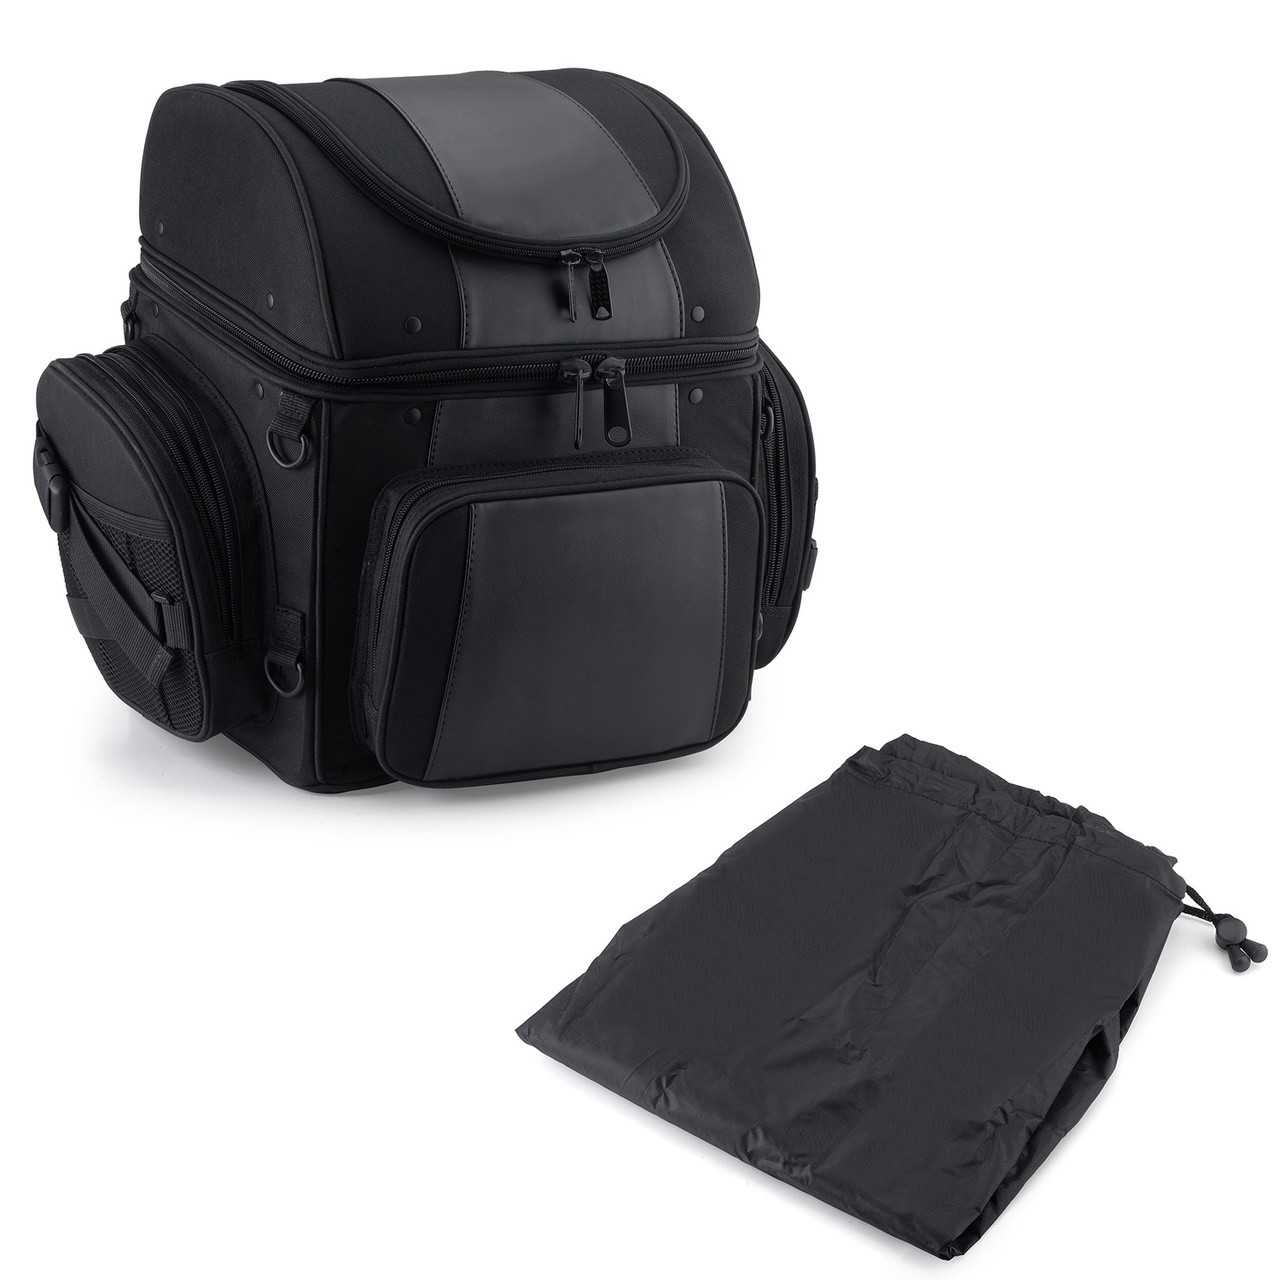 Large Back Motorcycle Seat Luggage (4080 cubic inches)   Main image  with Accessories